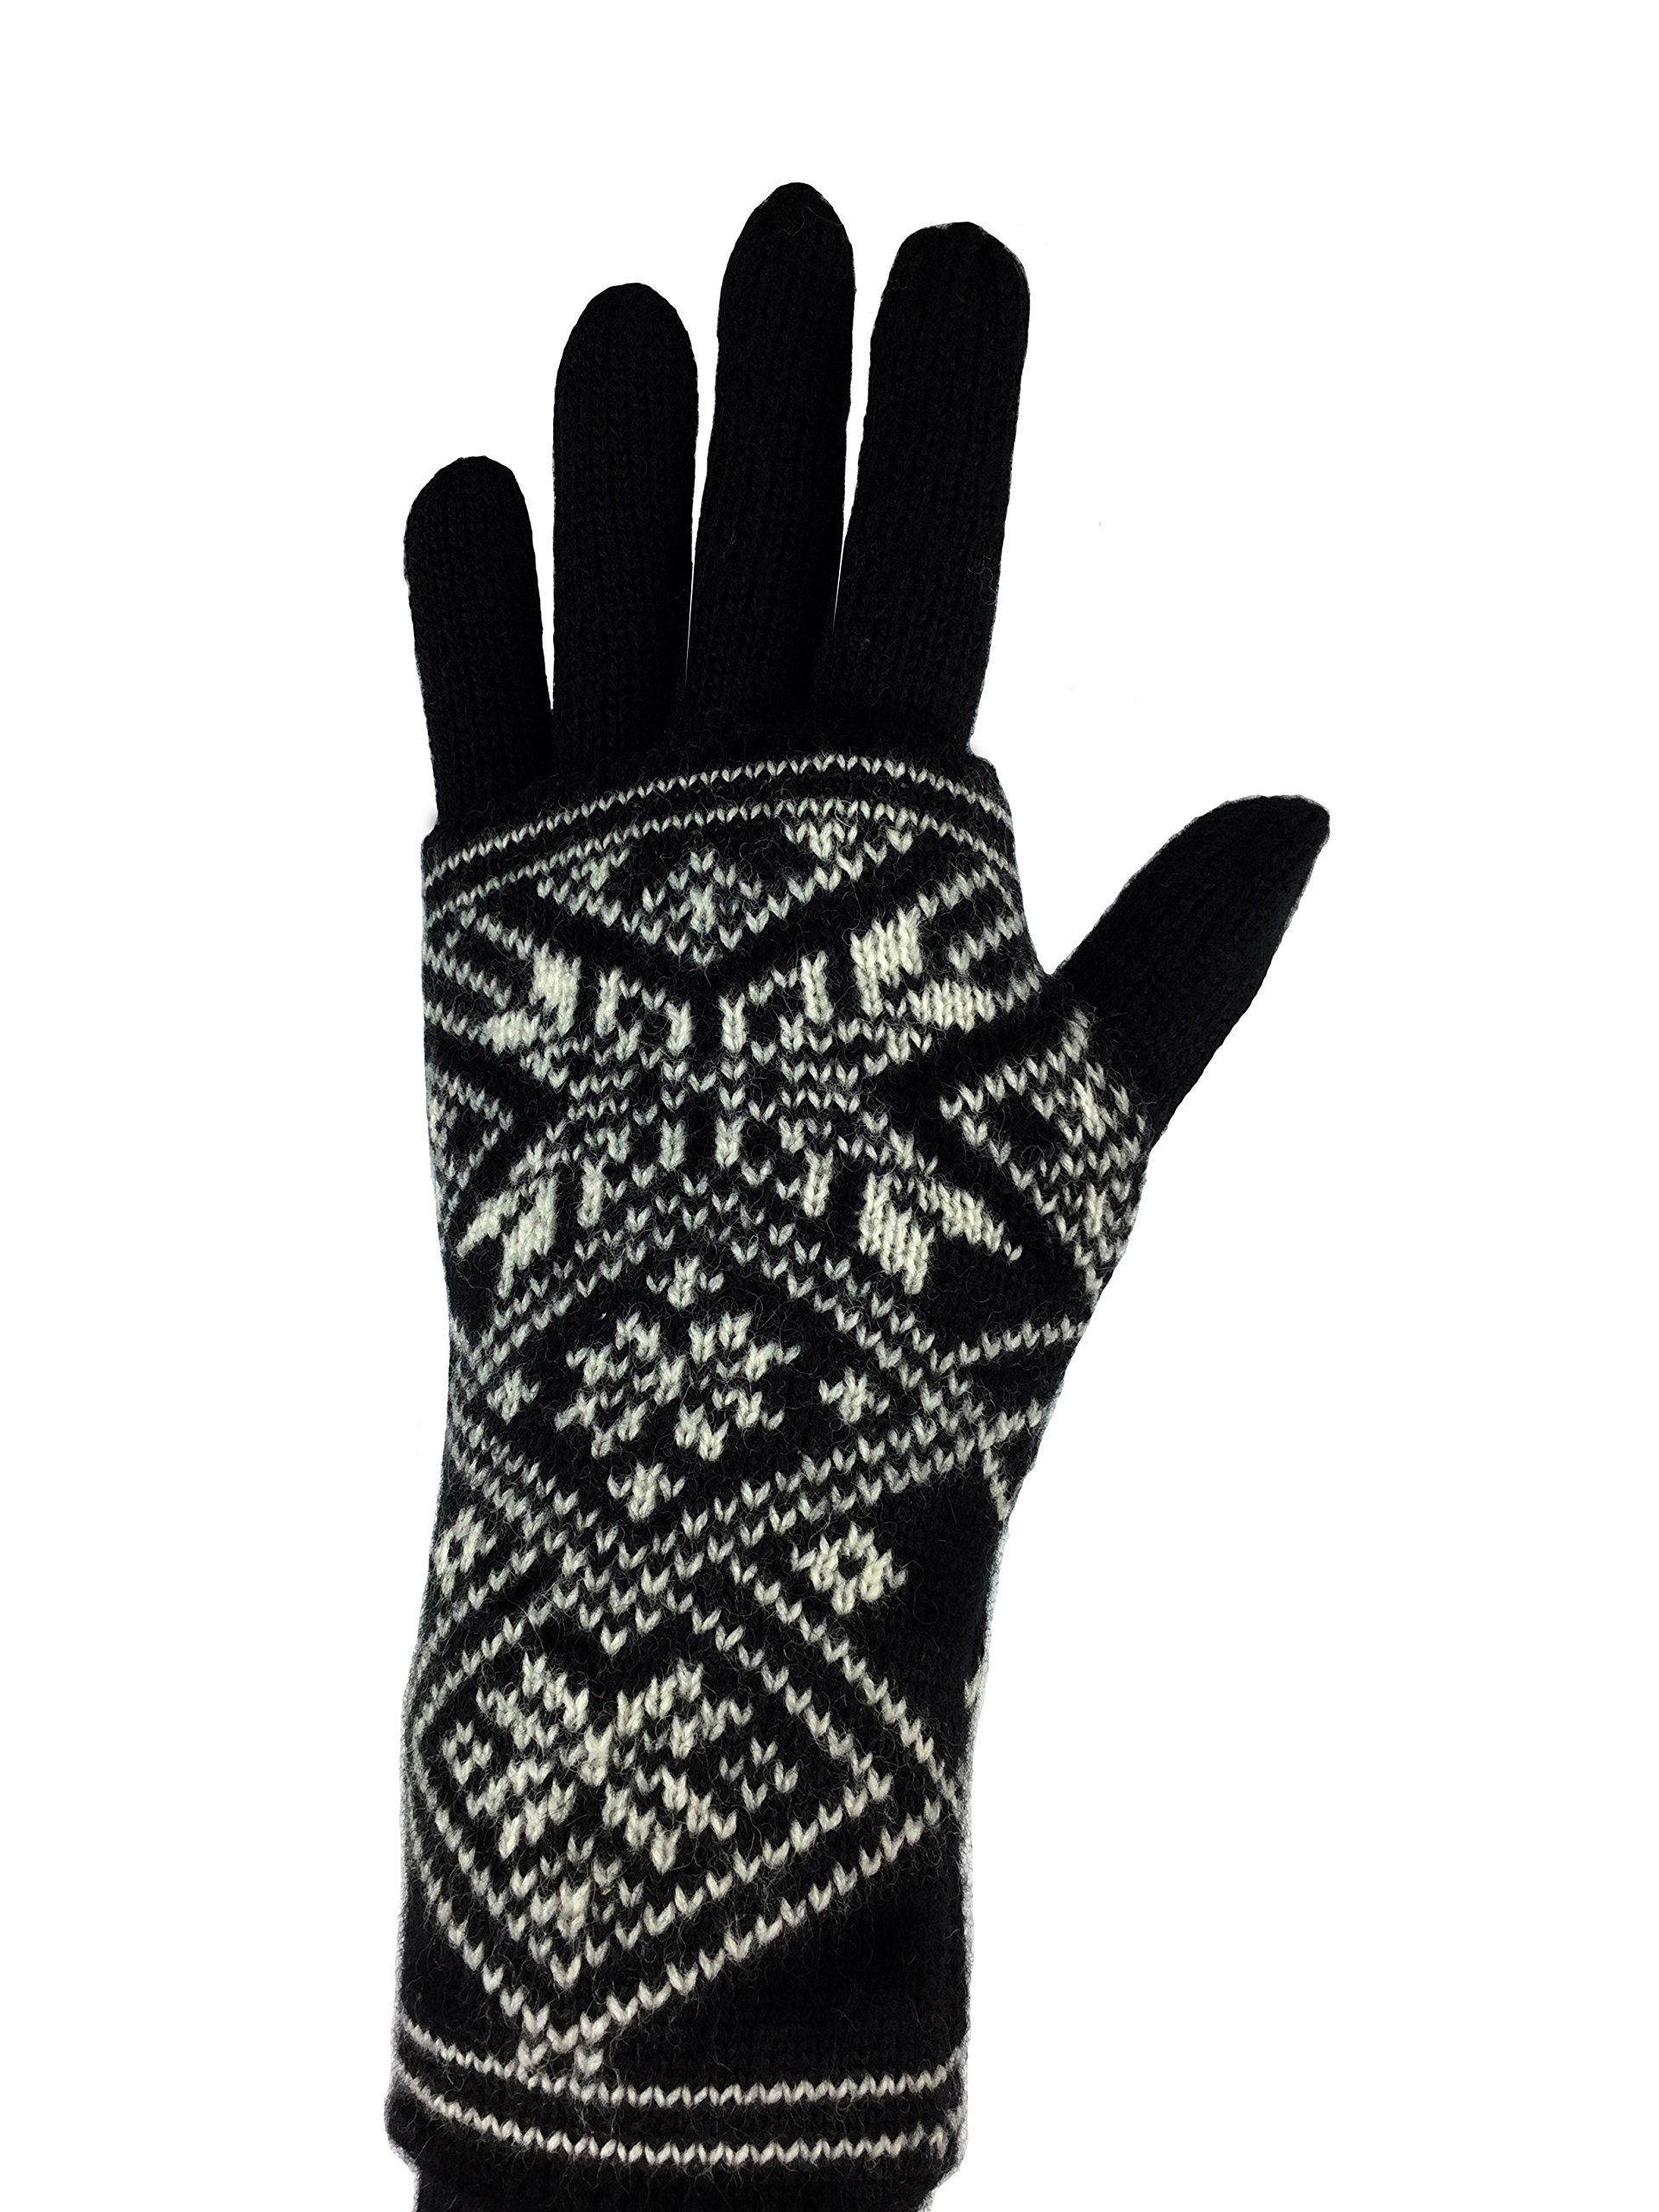 A Pair of 100% Wool Norwegian Gloves and Wristwarmer